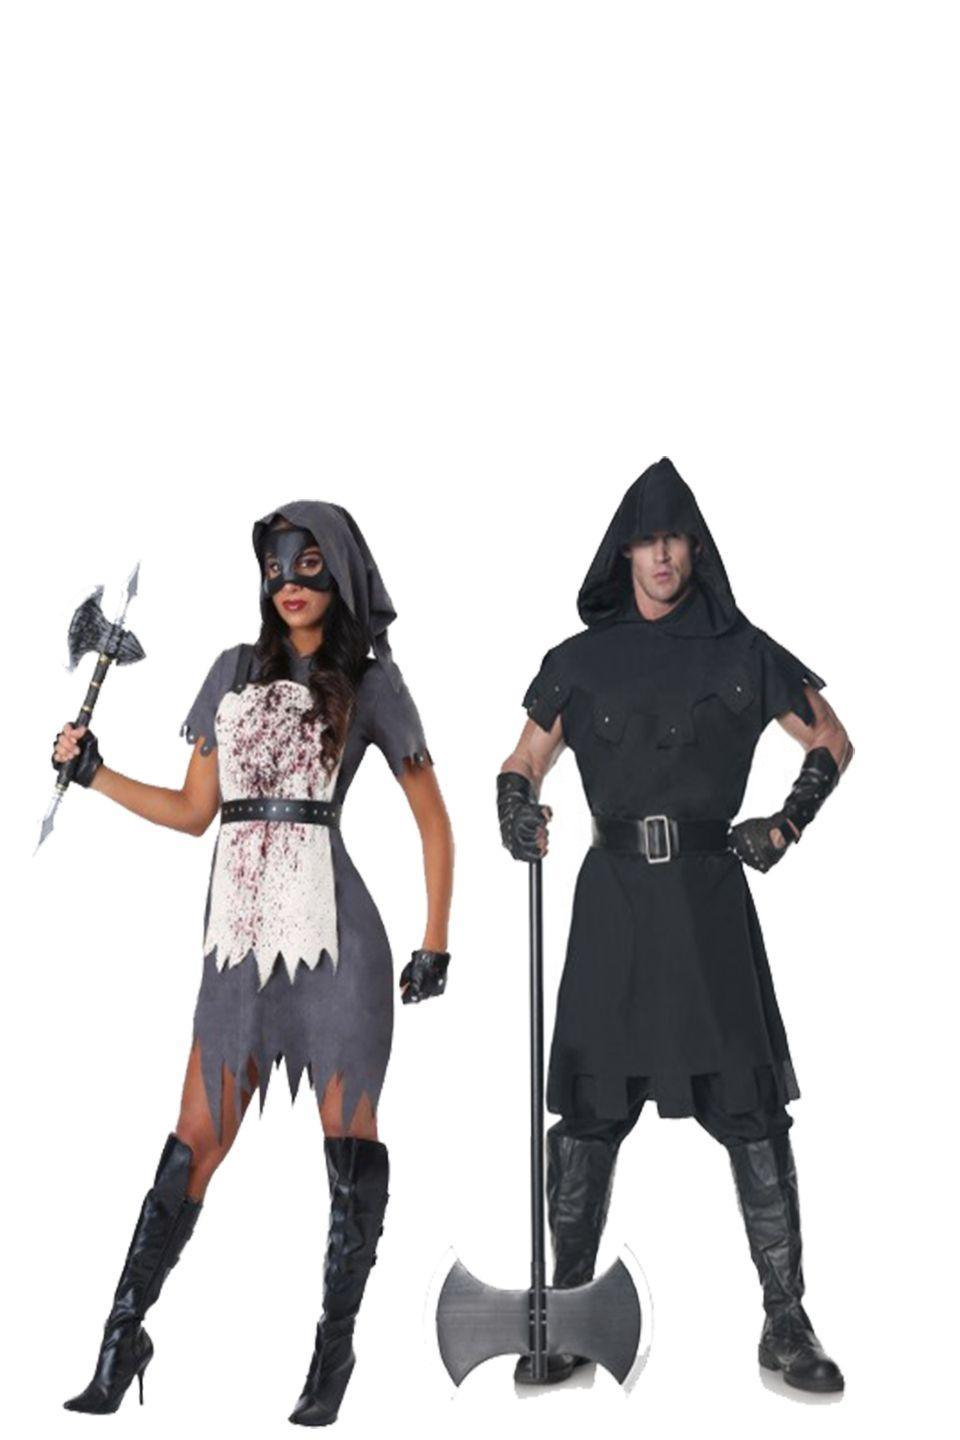 """<p>When you show up to a Halloween party in this intense and scary apparel, every will know not to mess with you.</p><p><a class=""""link rapid-noclick-resp"""" href=""""https://www.amazon.com/Leg-Avenue-Executioner-Medieval-Costume/dp/B01DZWZFM2?tag=syn-yahoo-20&ascsubtag=%5Bartid%7C10070.g.28669645%5Bsrc%7Cyahoo-us"""" rel=""""nofollow noopener"""" target=""""_blank"""" data-ylk=""""slk:Shop Women's Costume"""">Shop Women's Costume</a></p><p><a class=""""link rapid-noclick-resp"""" href=""""https://www.amazon.com/Underwraps-Mens-Executioner-Black-Size/dp/B00CMIBDMW?tag=syn-yahoo-20&ascsubtag=%5Bartid%7C10070.g.28669645%5Bsrc%7Cyahoo-us"""" rel=""""nofollow noopener"""" target=""""_blank"""" data-ylk=""""slk:Shop Men's Costume"""">Shop Men's Costume</a></p>"""